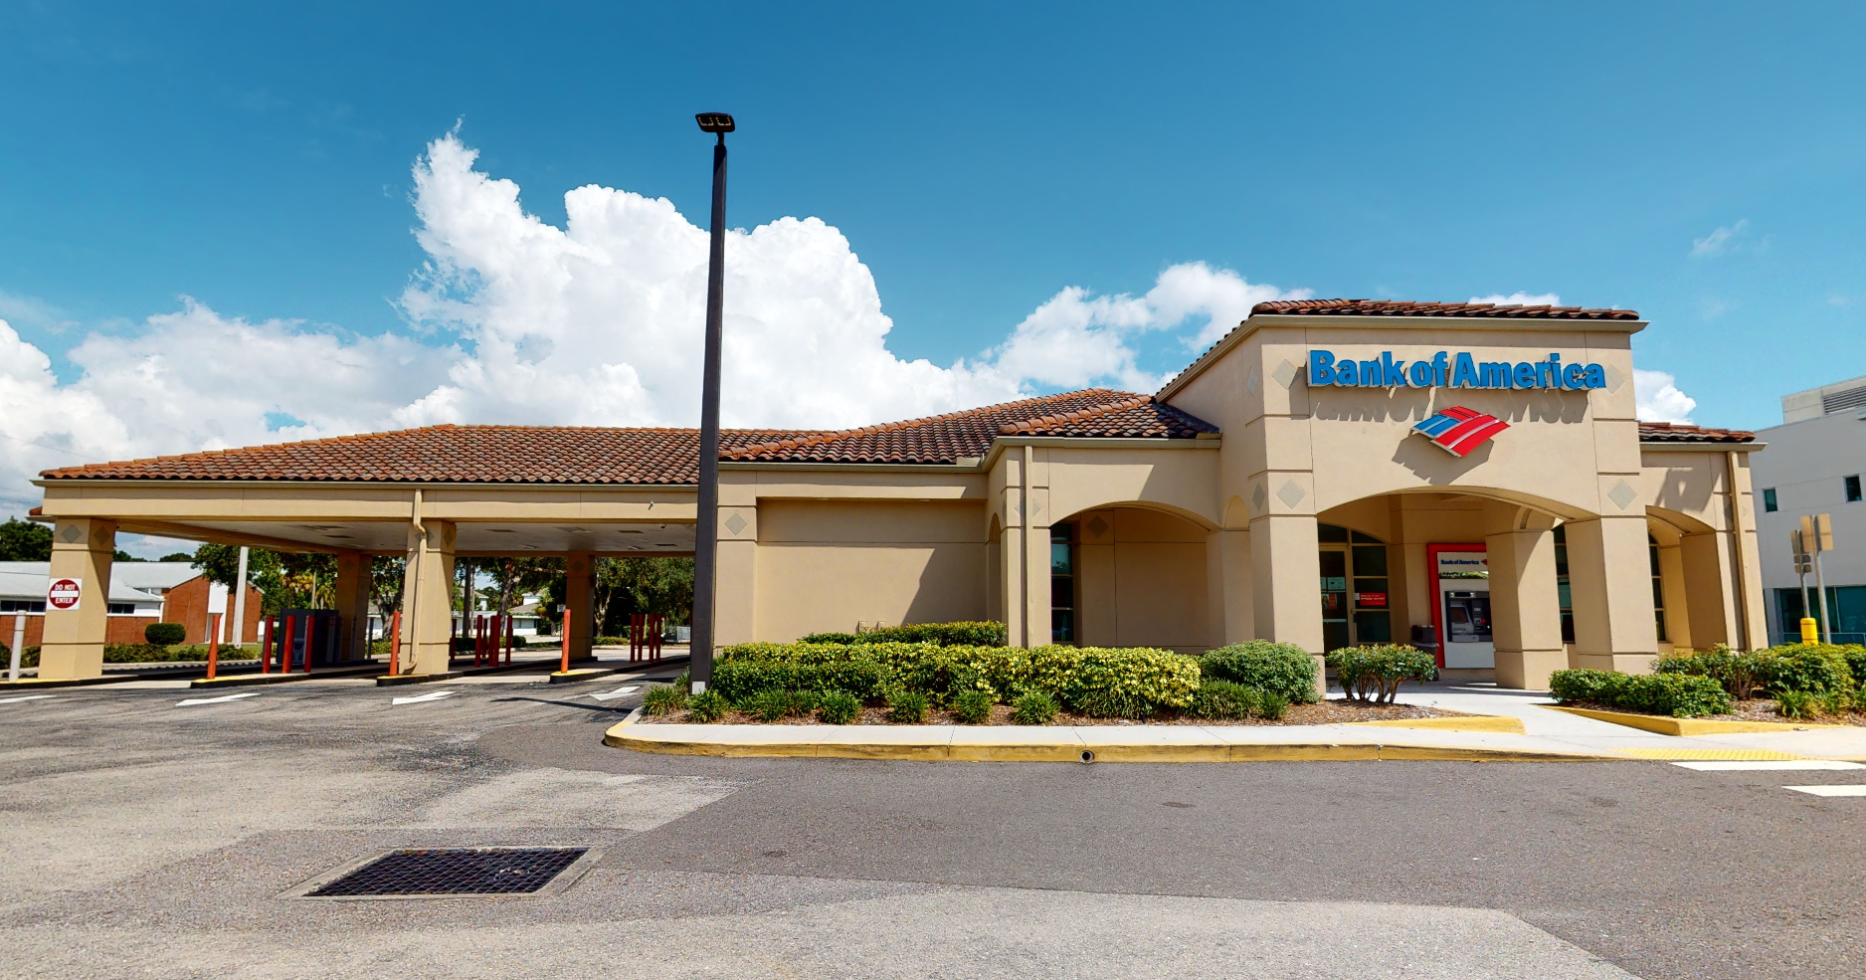 Bank of America financial center with drive-thru ATM and teller | 3303 S Tamiami Trl, Sarasota, FL 34239